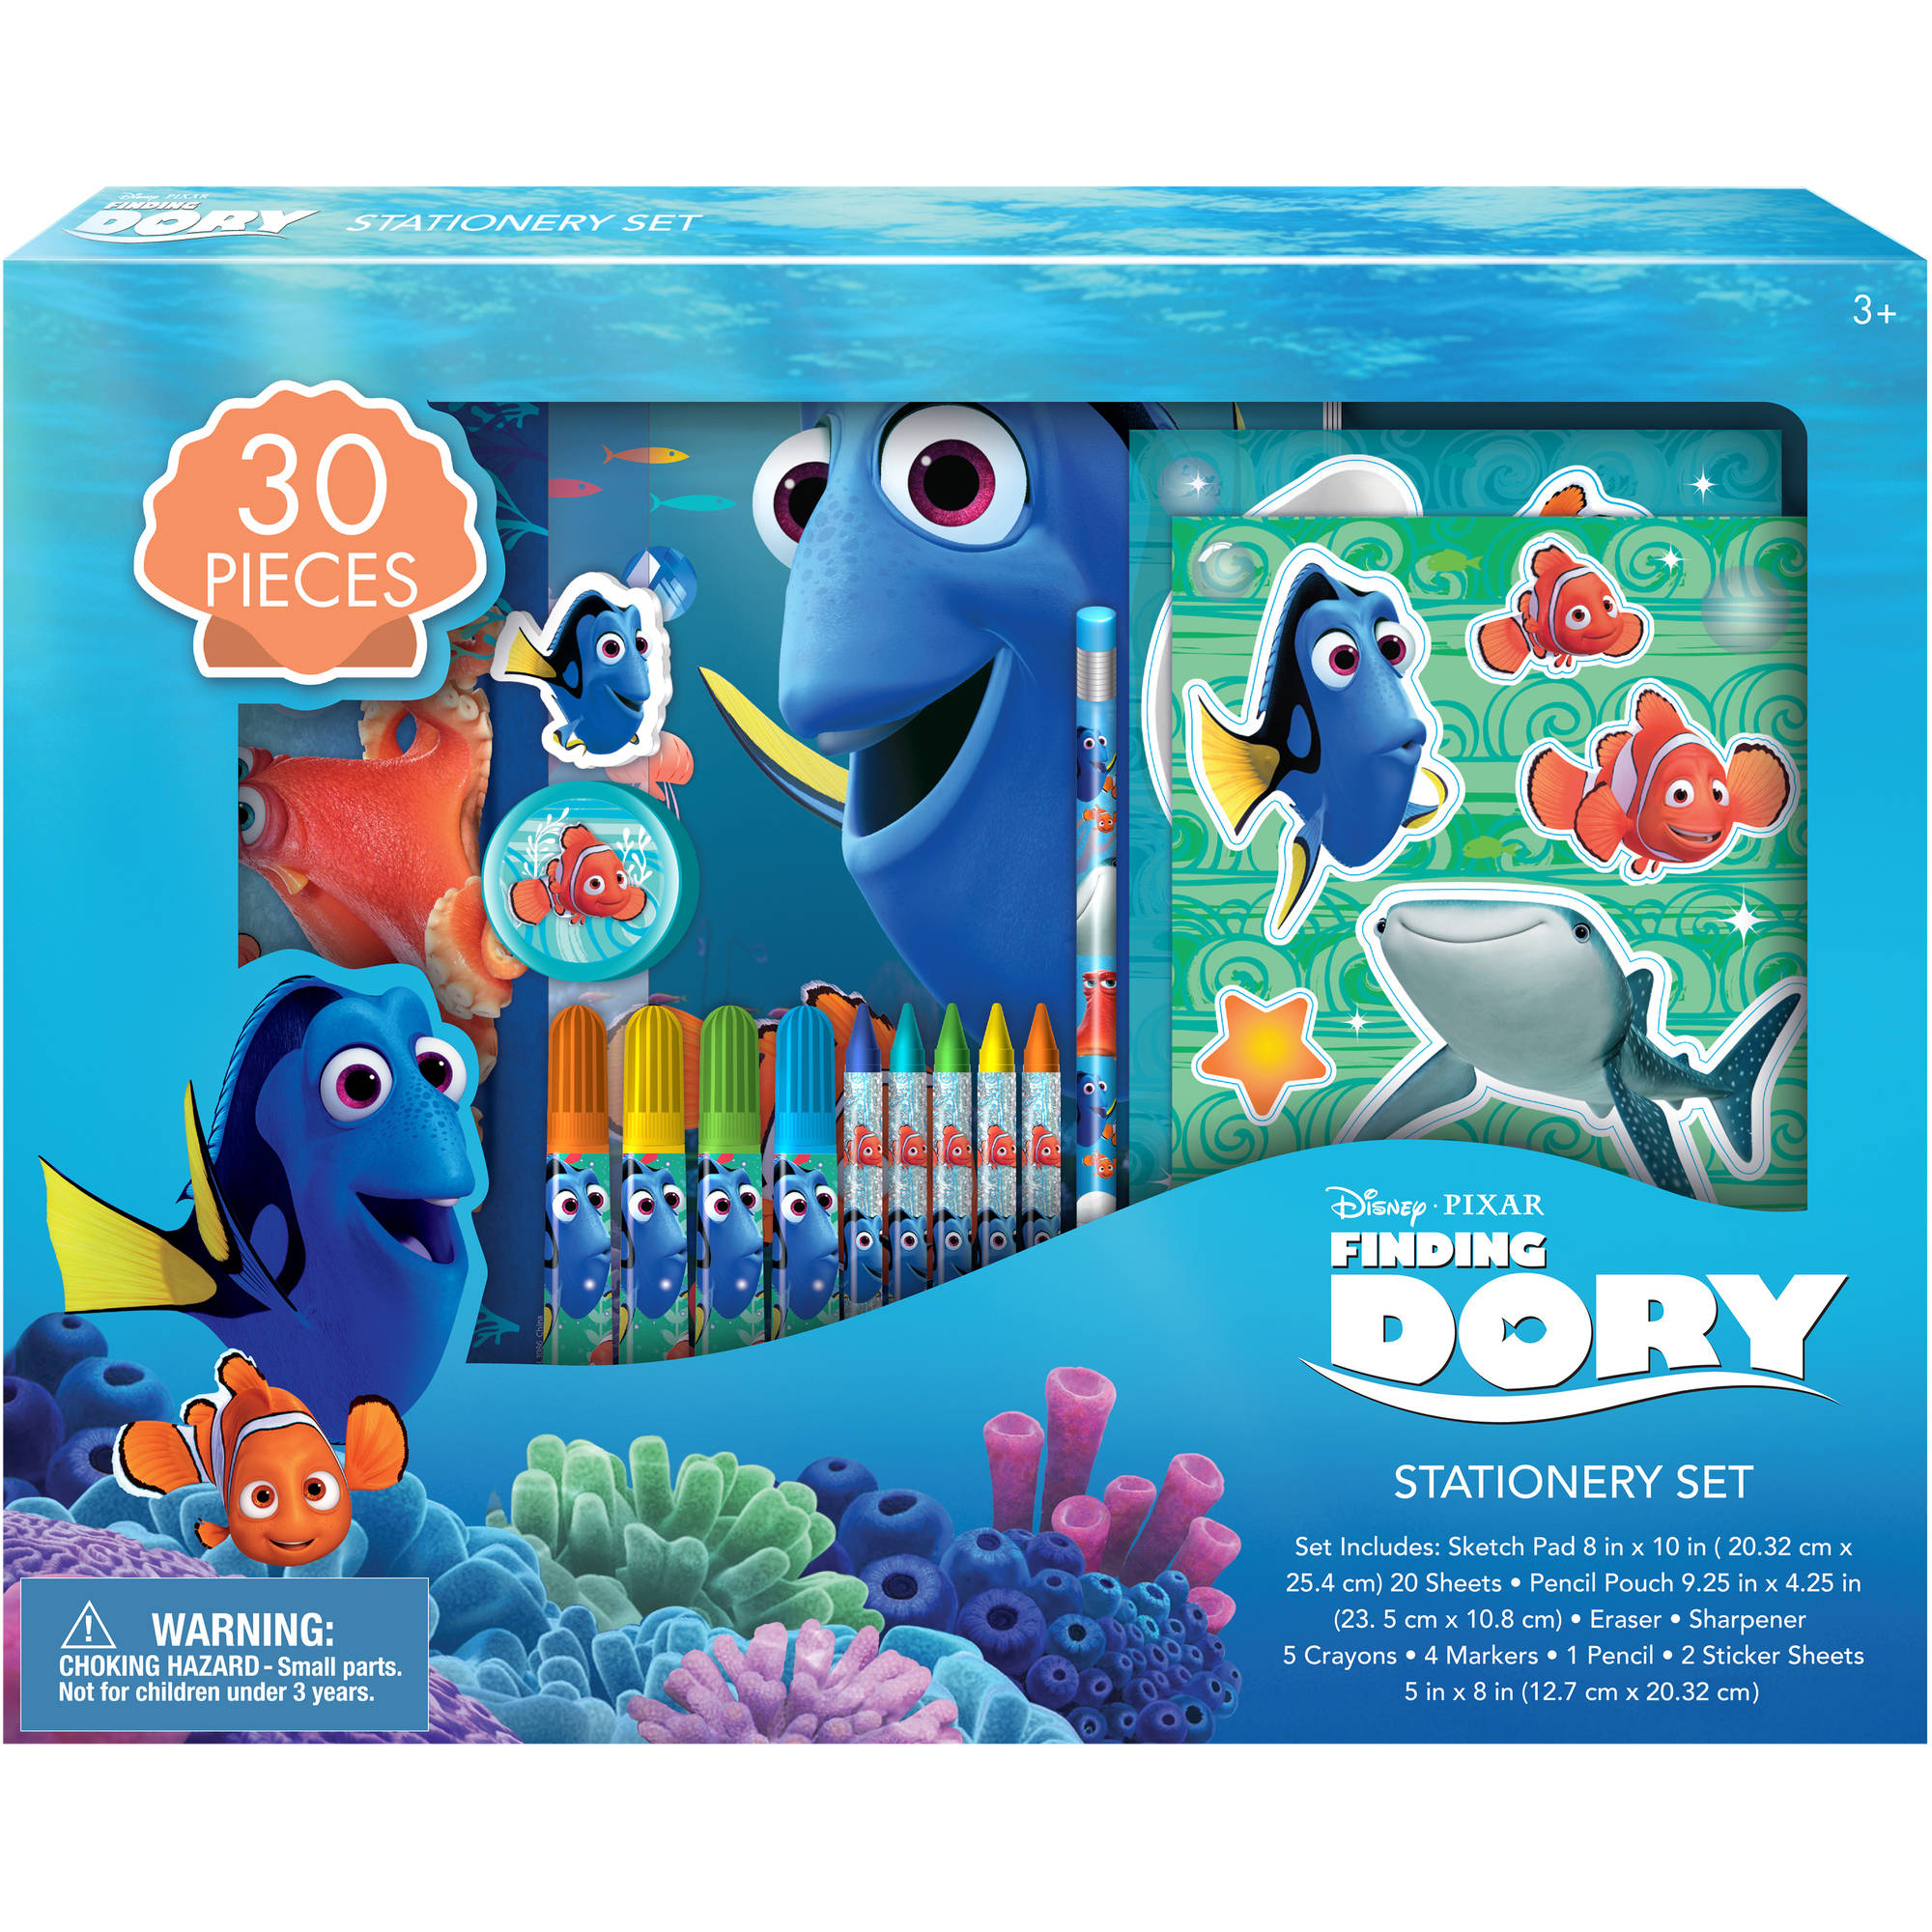 Finding Dory School Stationary Bundle, 30 Pieces